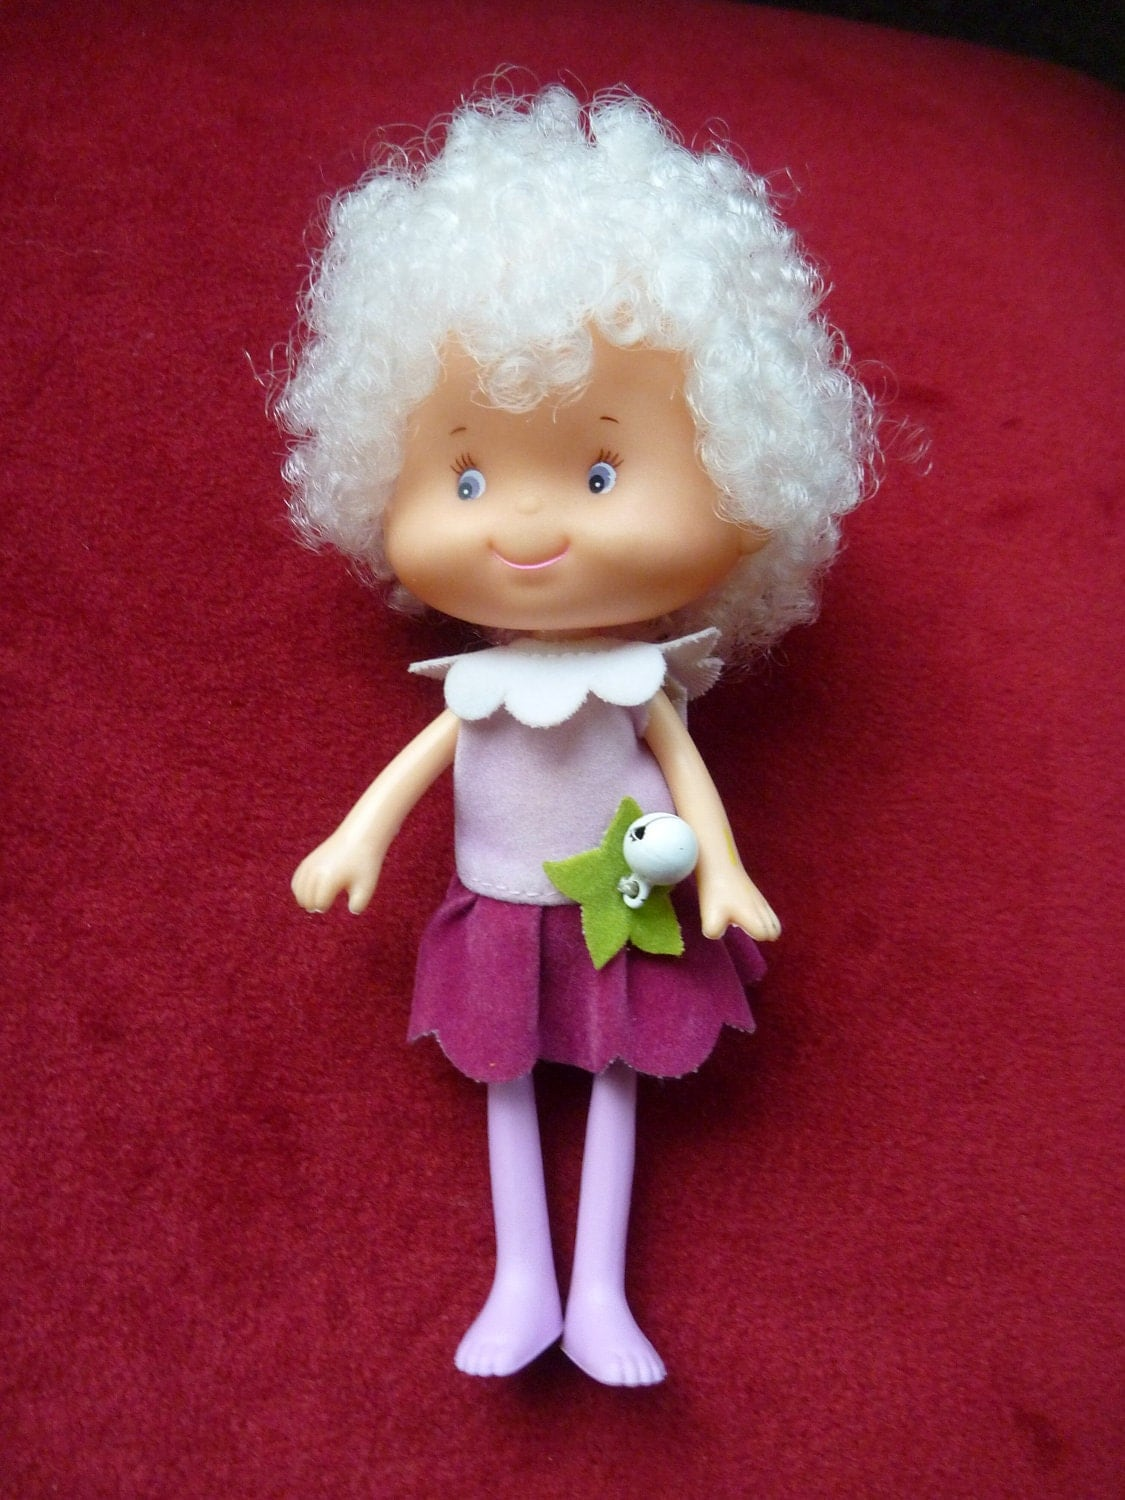 80s Toy Dolls : Vintage s herself the elf snowdrop doll american greetings